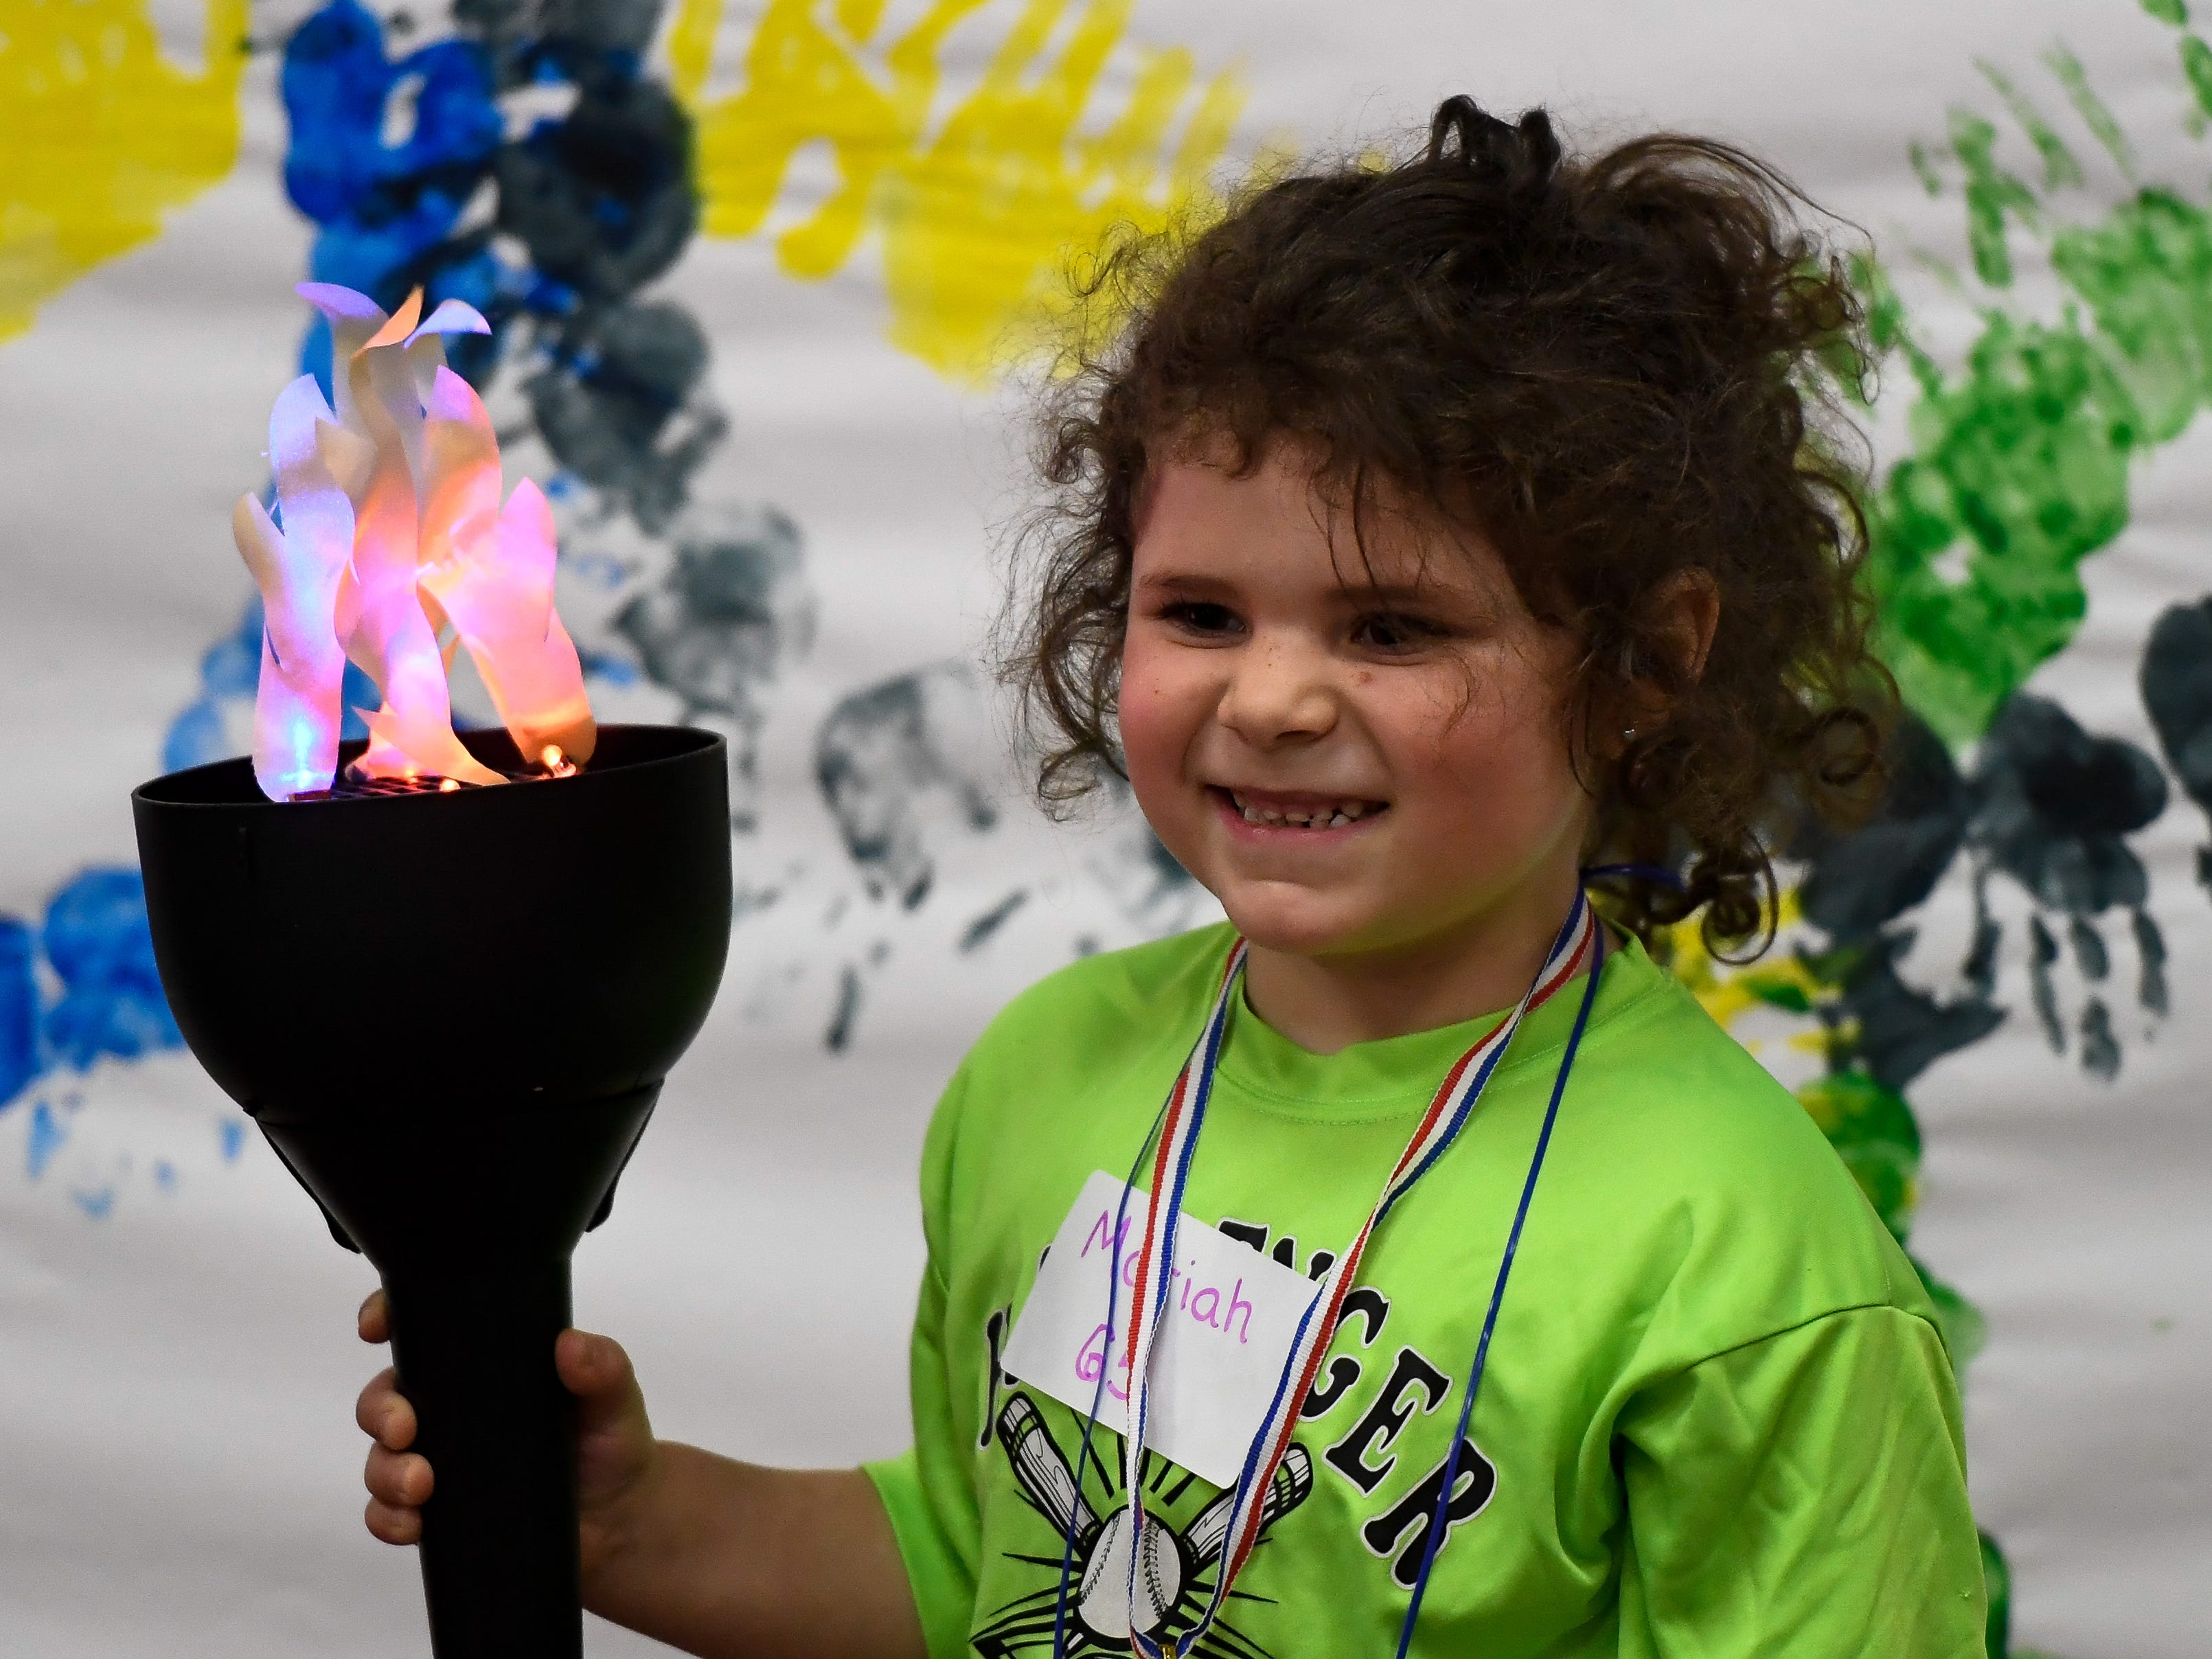 Mariah Jost, 5 years-old, on the medal stand during the Special Olympics Unified Champion School Young Athlete program at Culver Early Learning Center Friday, March 22, 2019.